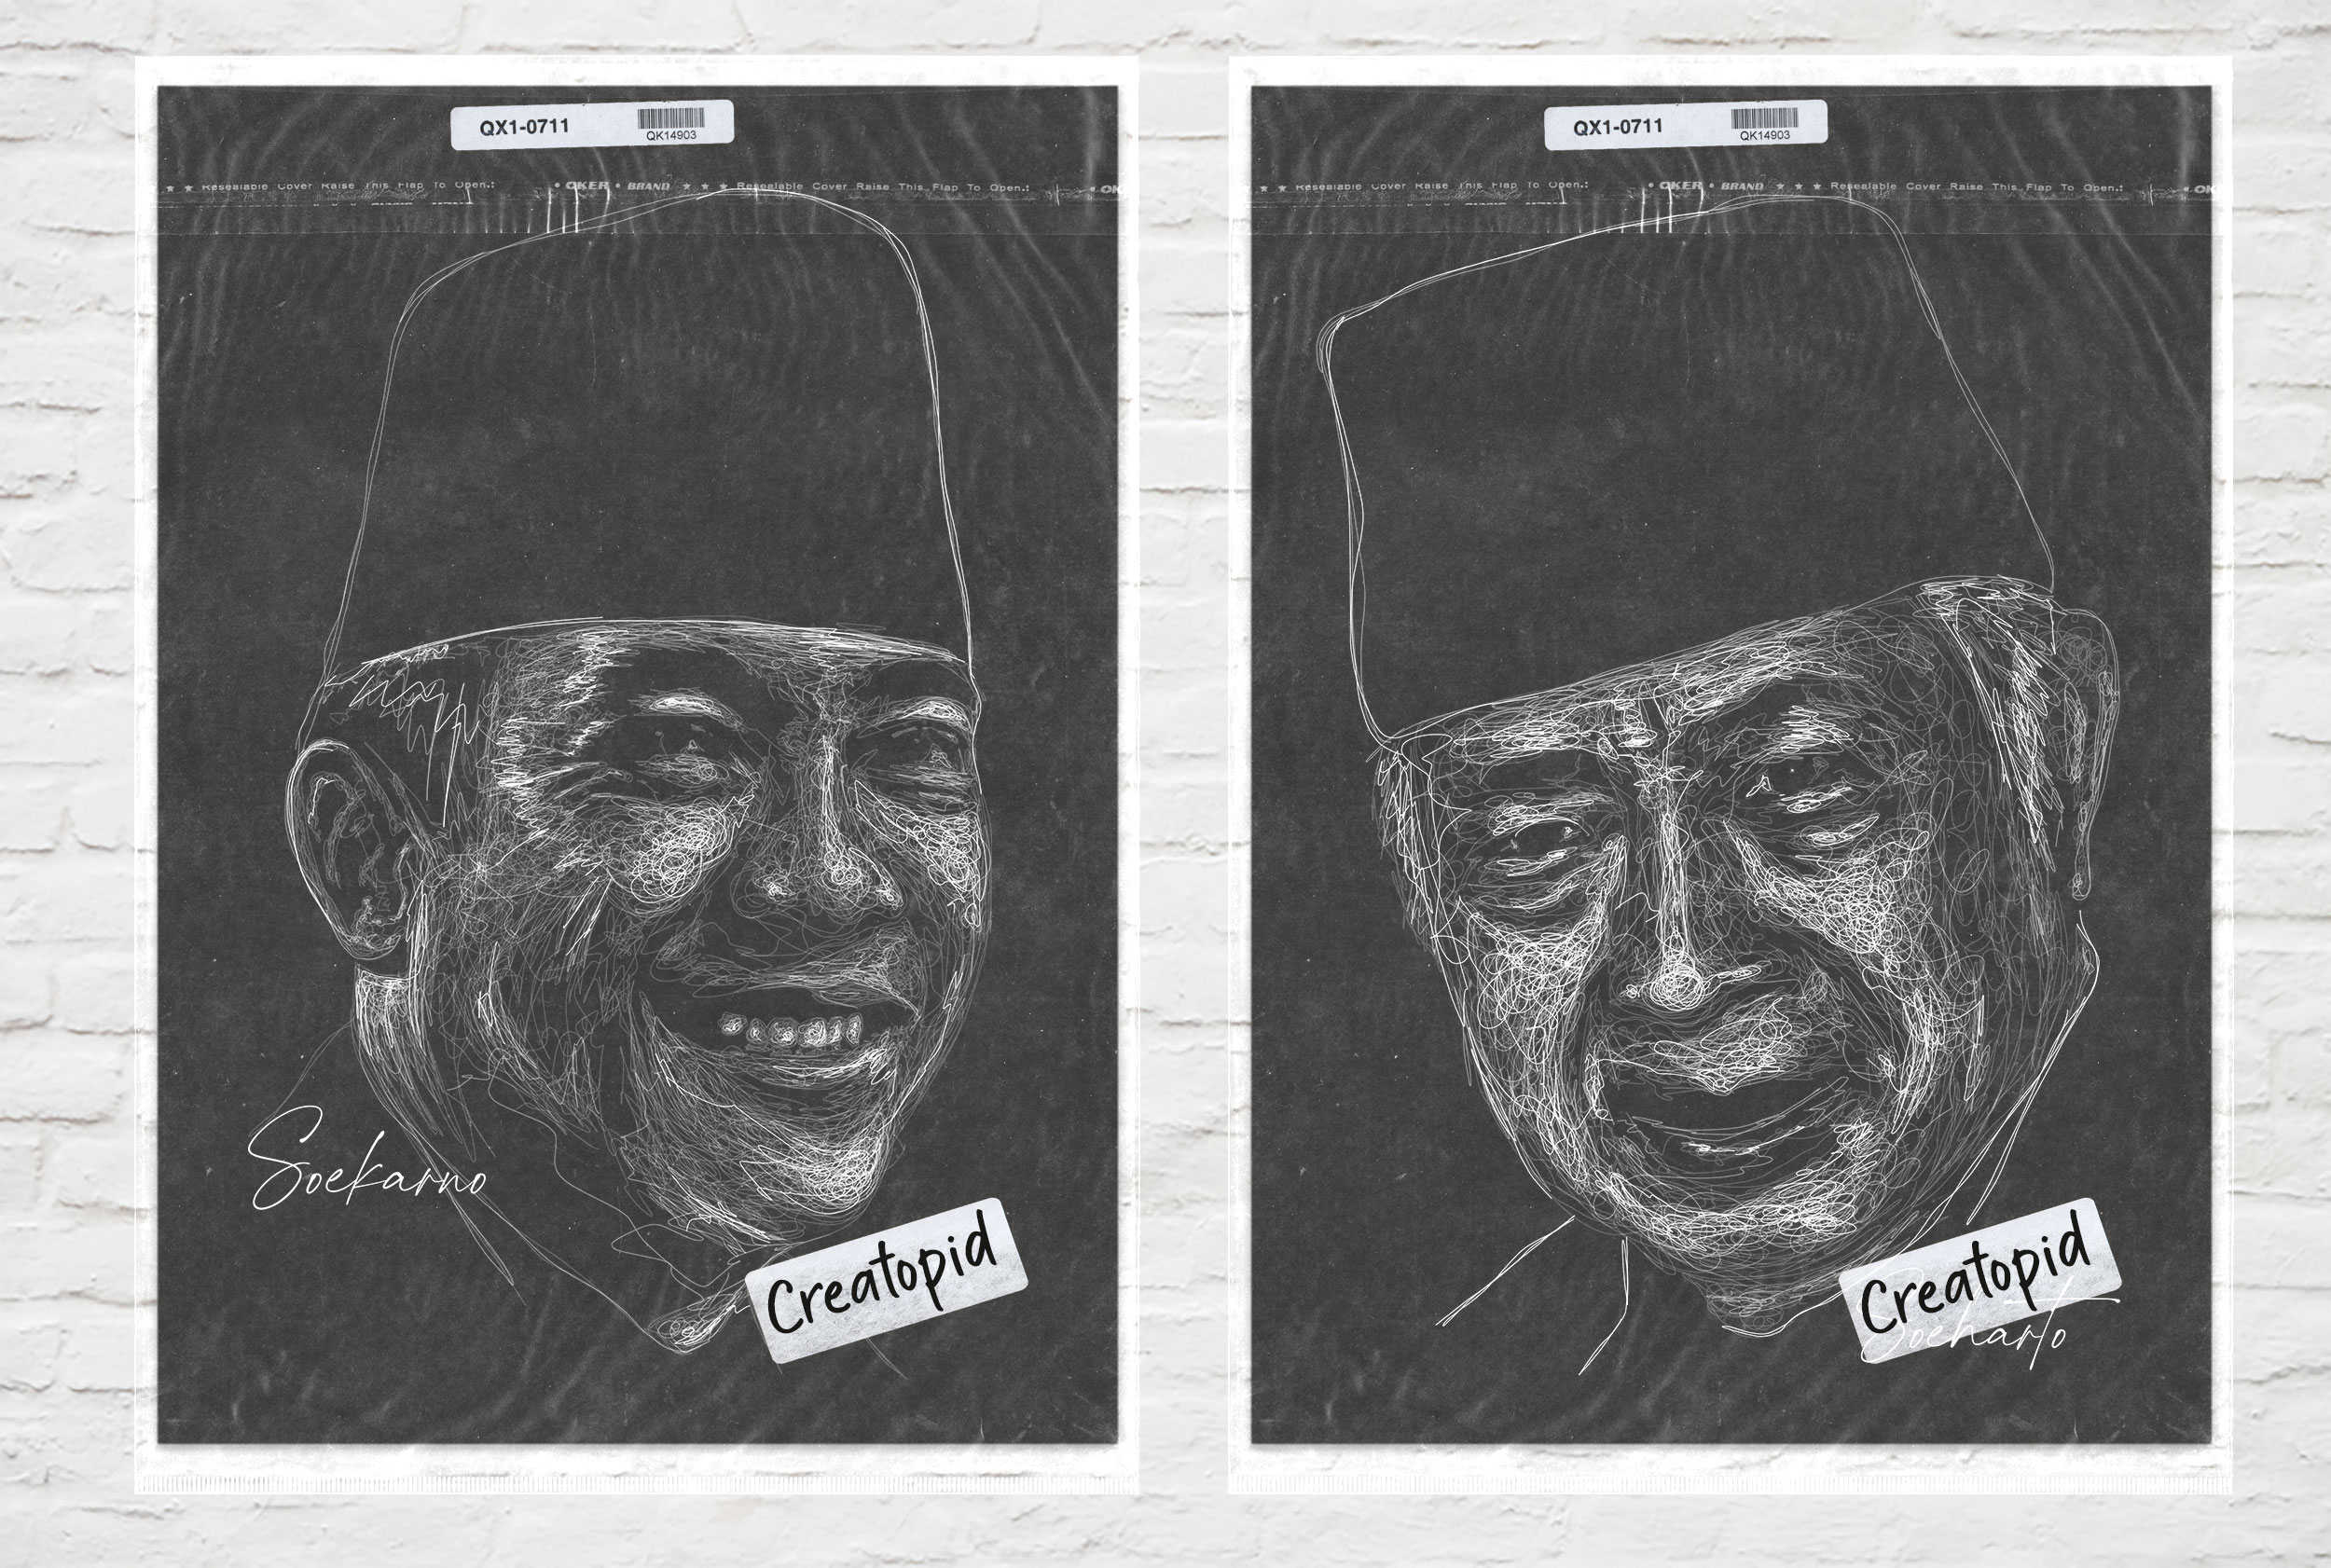 I WILL MAKE DARK SCRIBBLE ART PORTRAIT FROM YOUR PHOTO